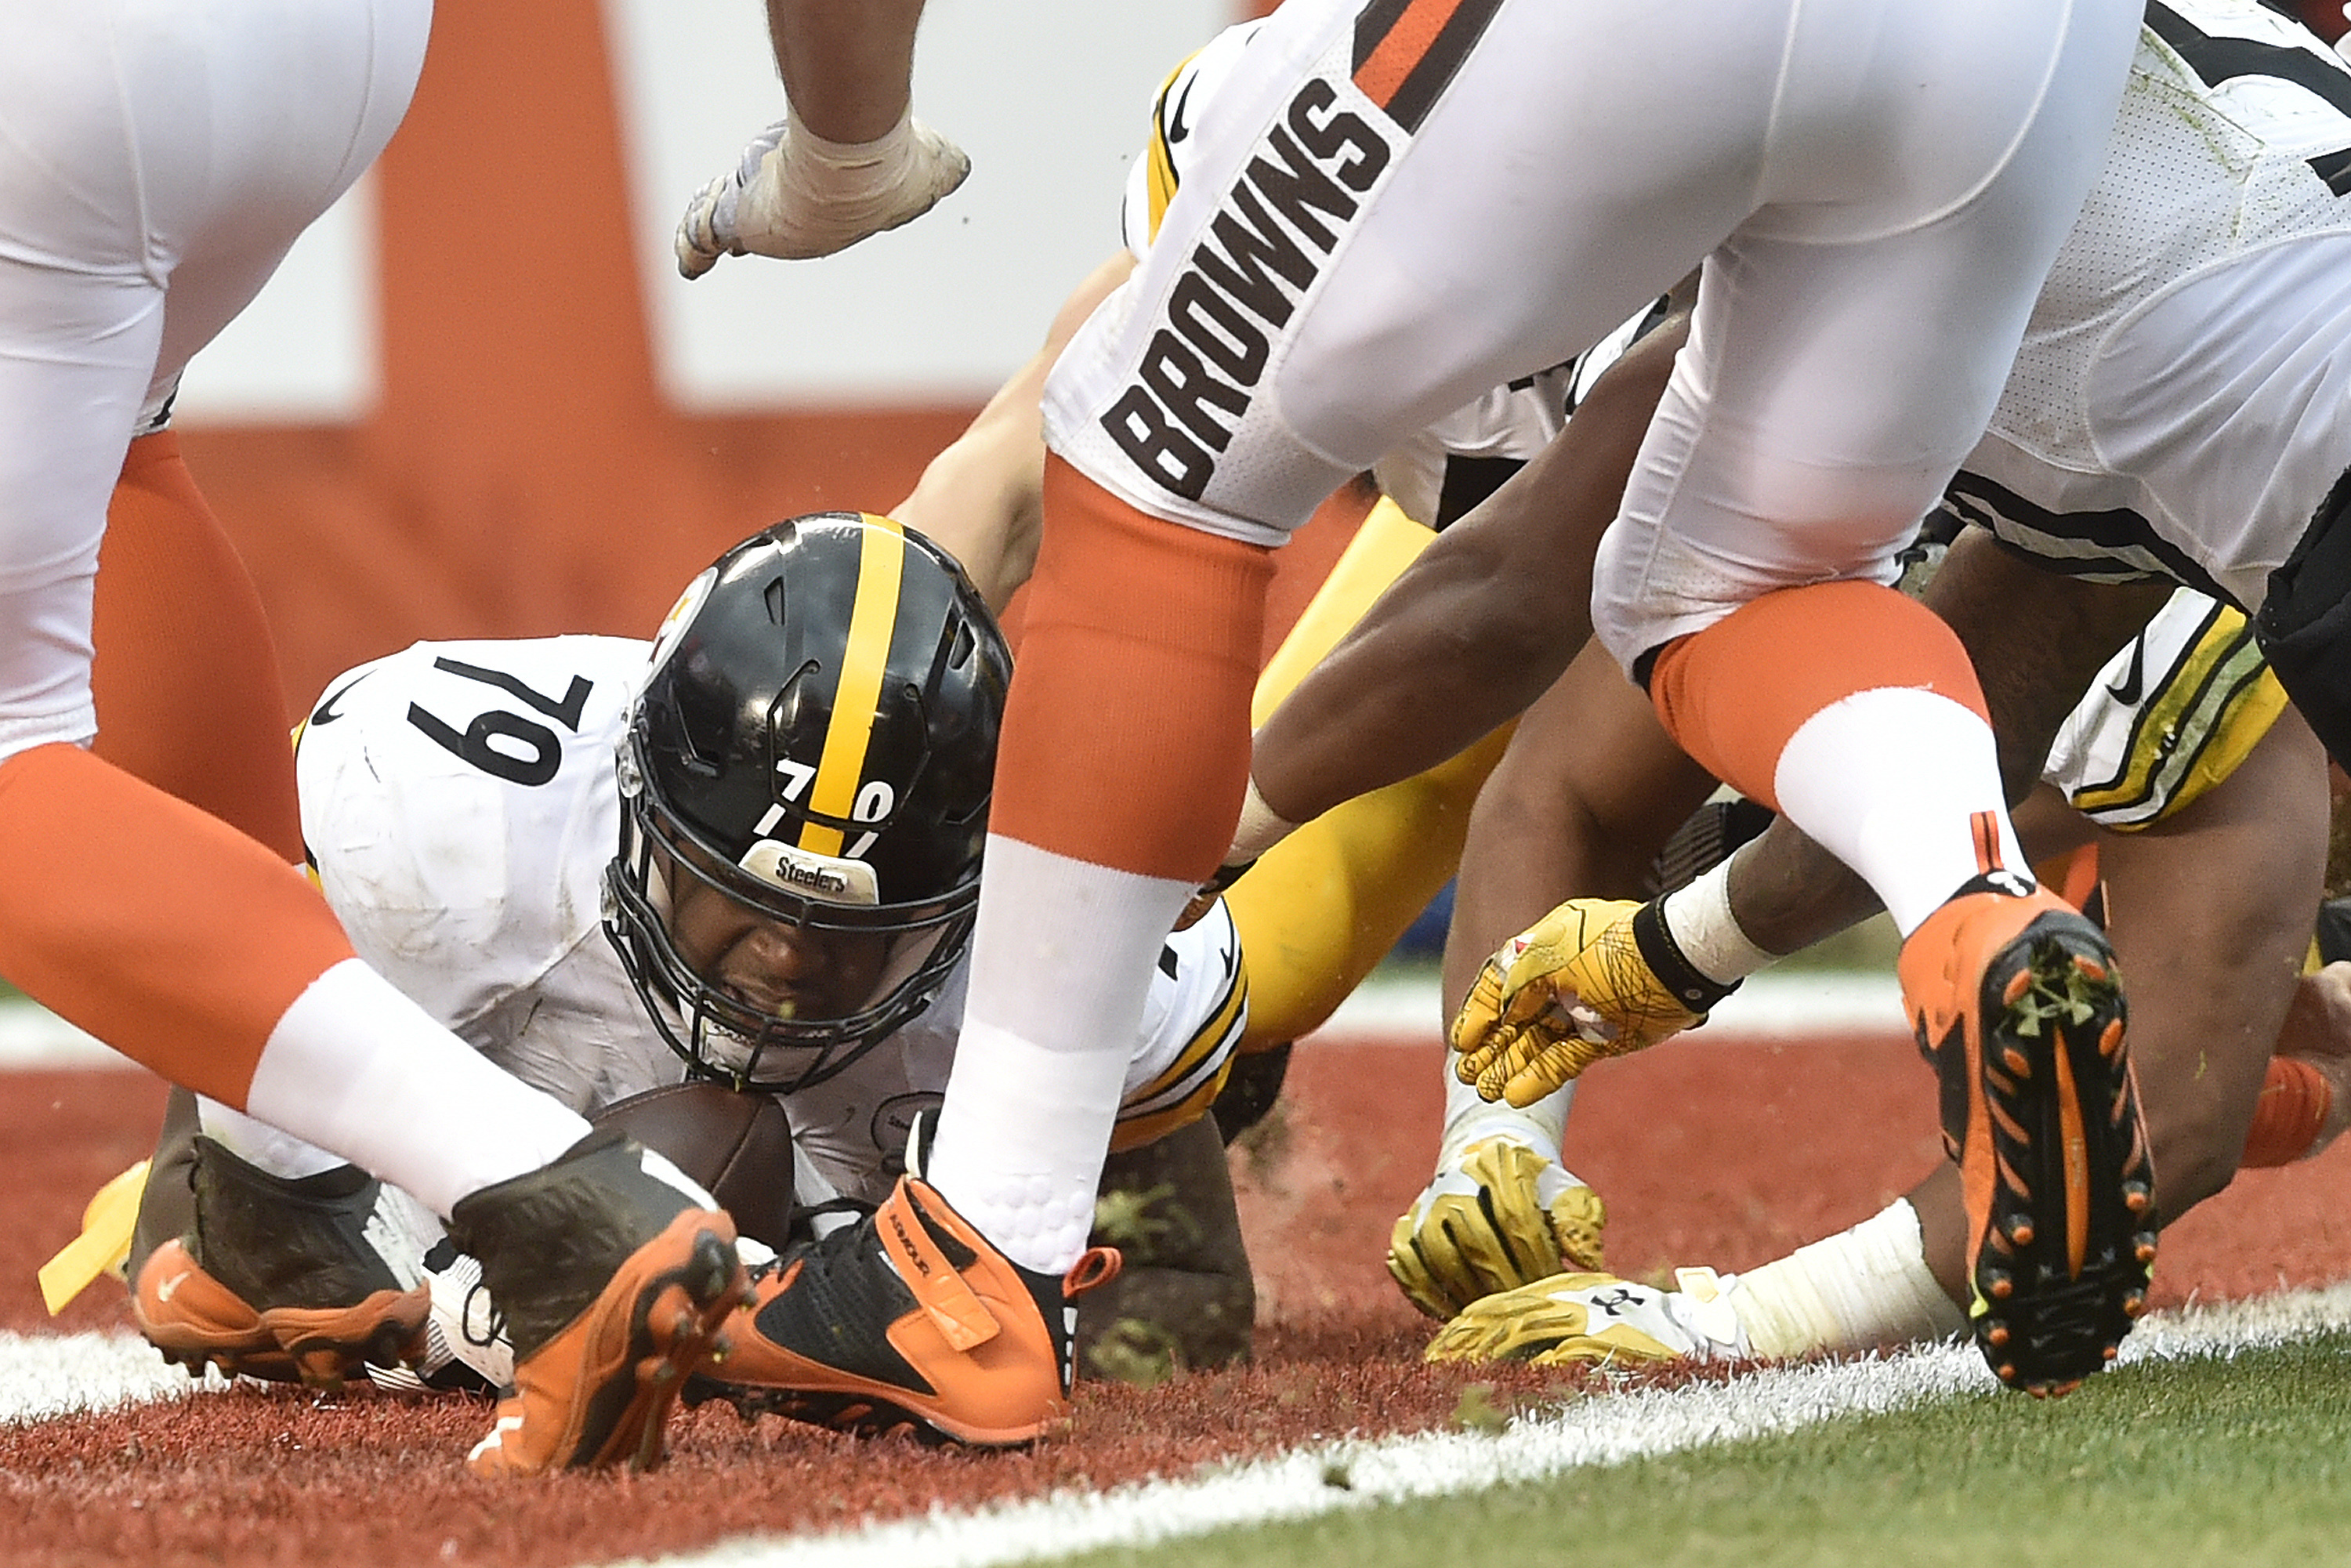 FILE - In this Nov. 20, 2016, file photo, Pittsburgh Steelers nose tackle Javon Hargrave (79) falls on a fumble by Cleveland Browns quarterback Josh McCown (13) in the end zone for a touchdown during the second half of an NFL football game in Cleveland. T